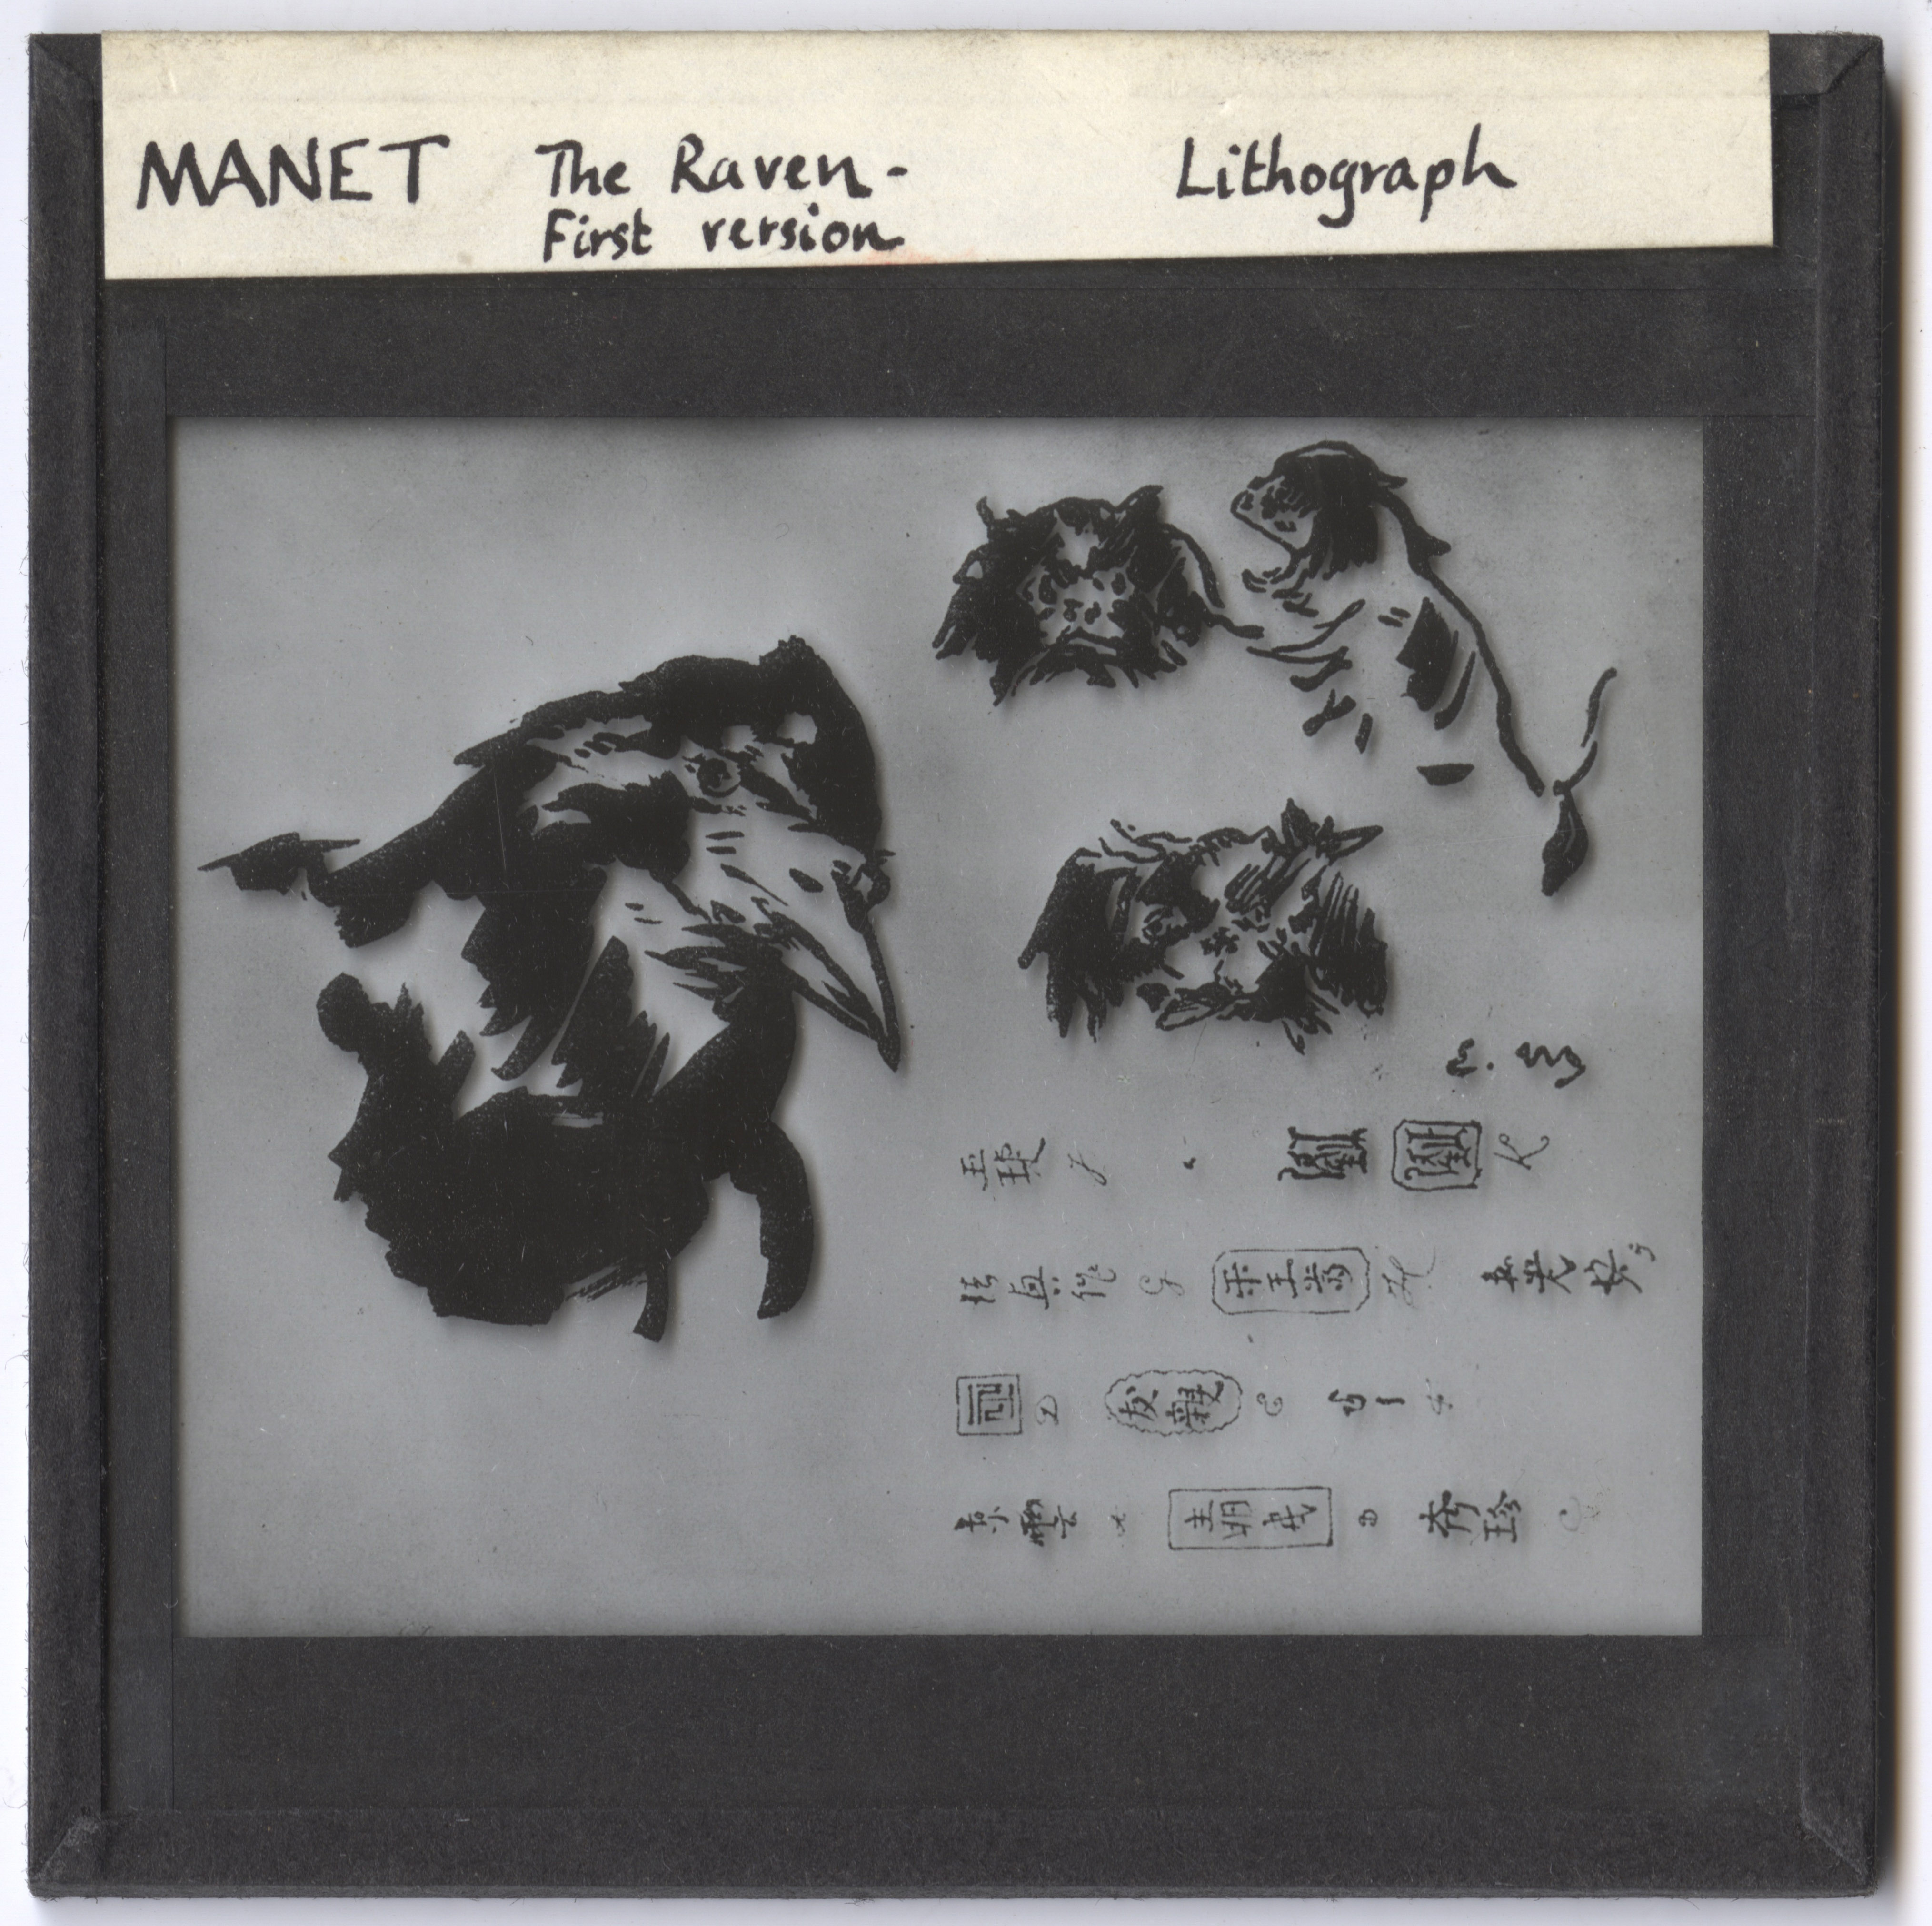 Lithograph of Manet's 'The Raven' first version